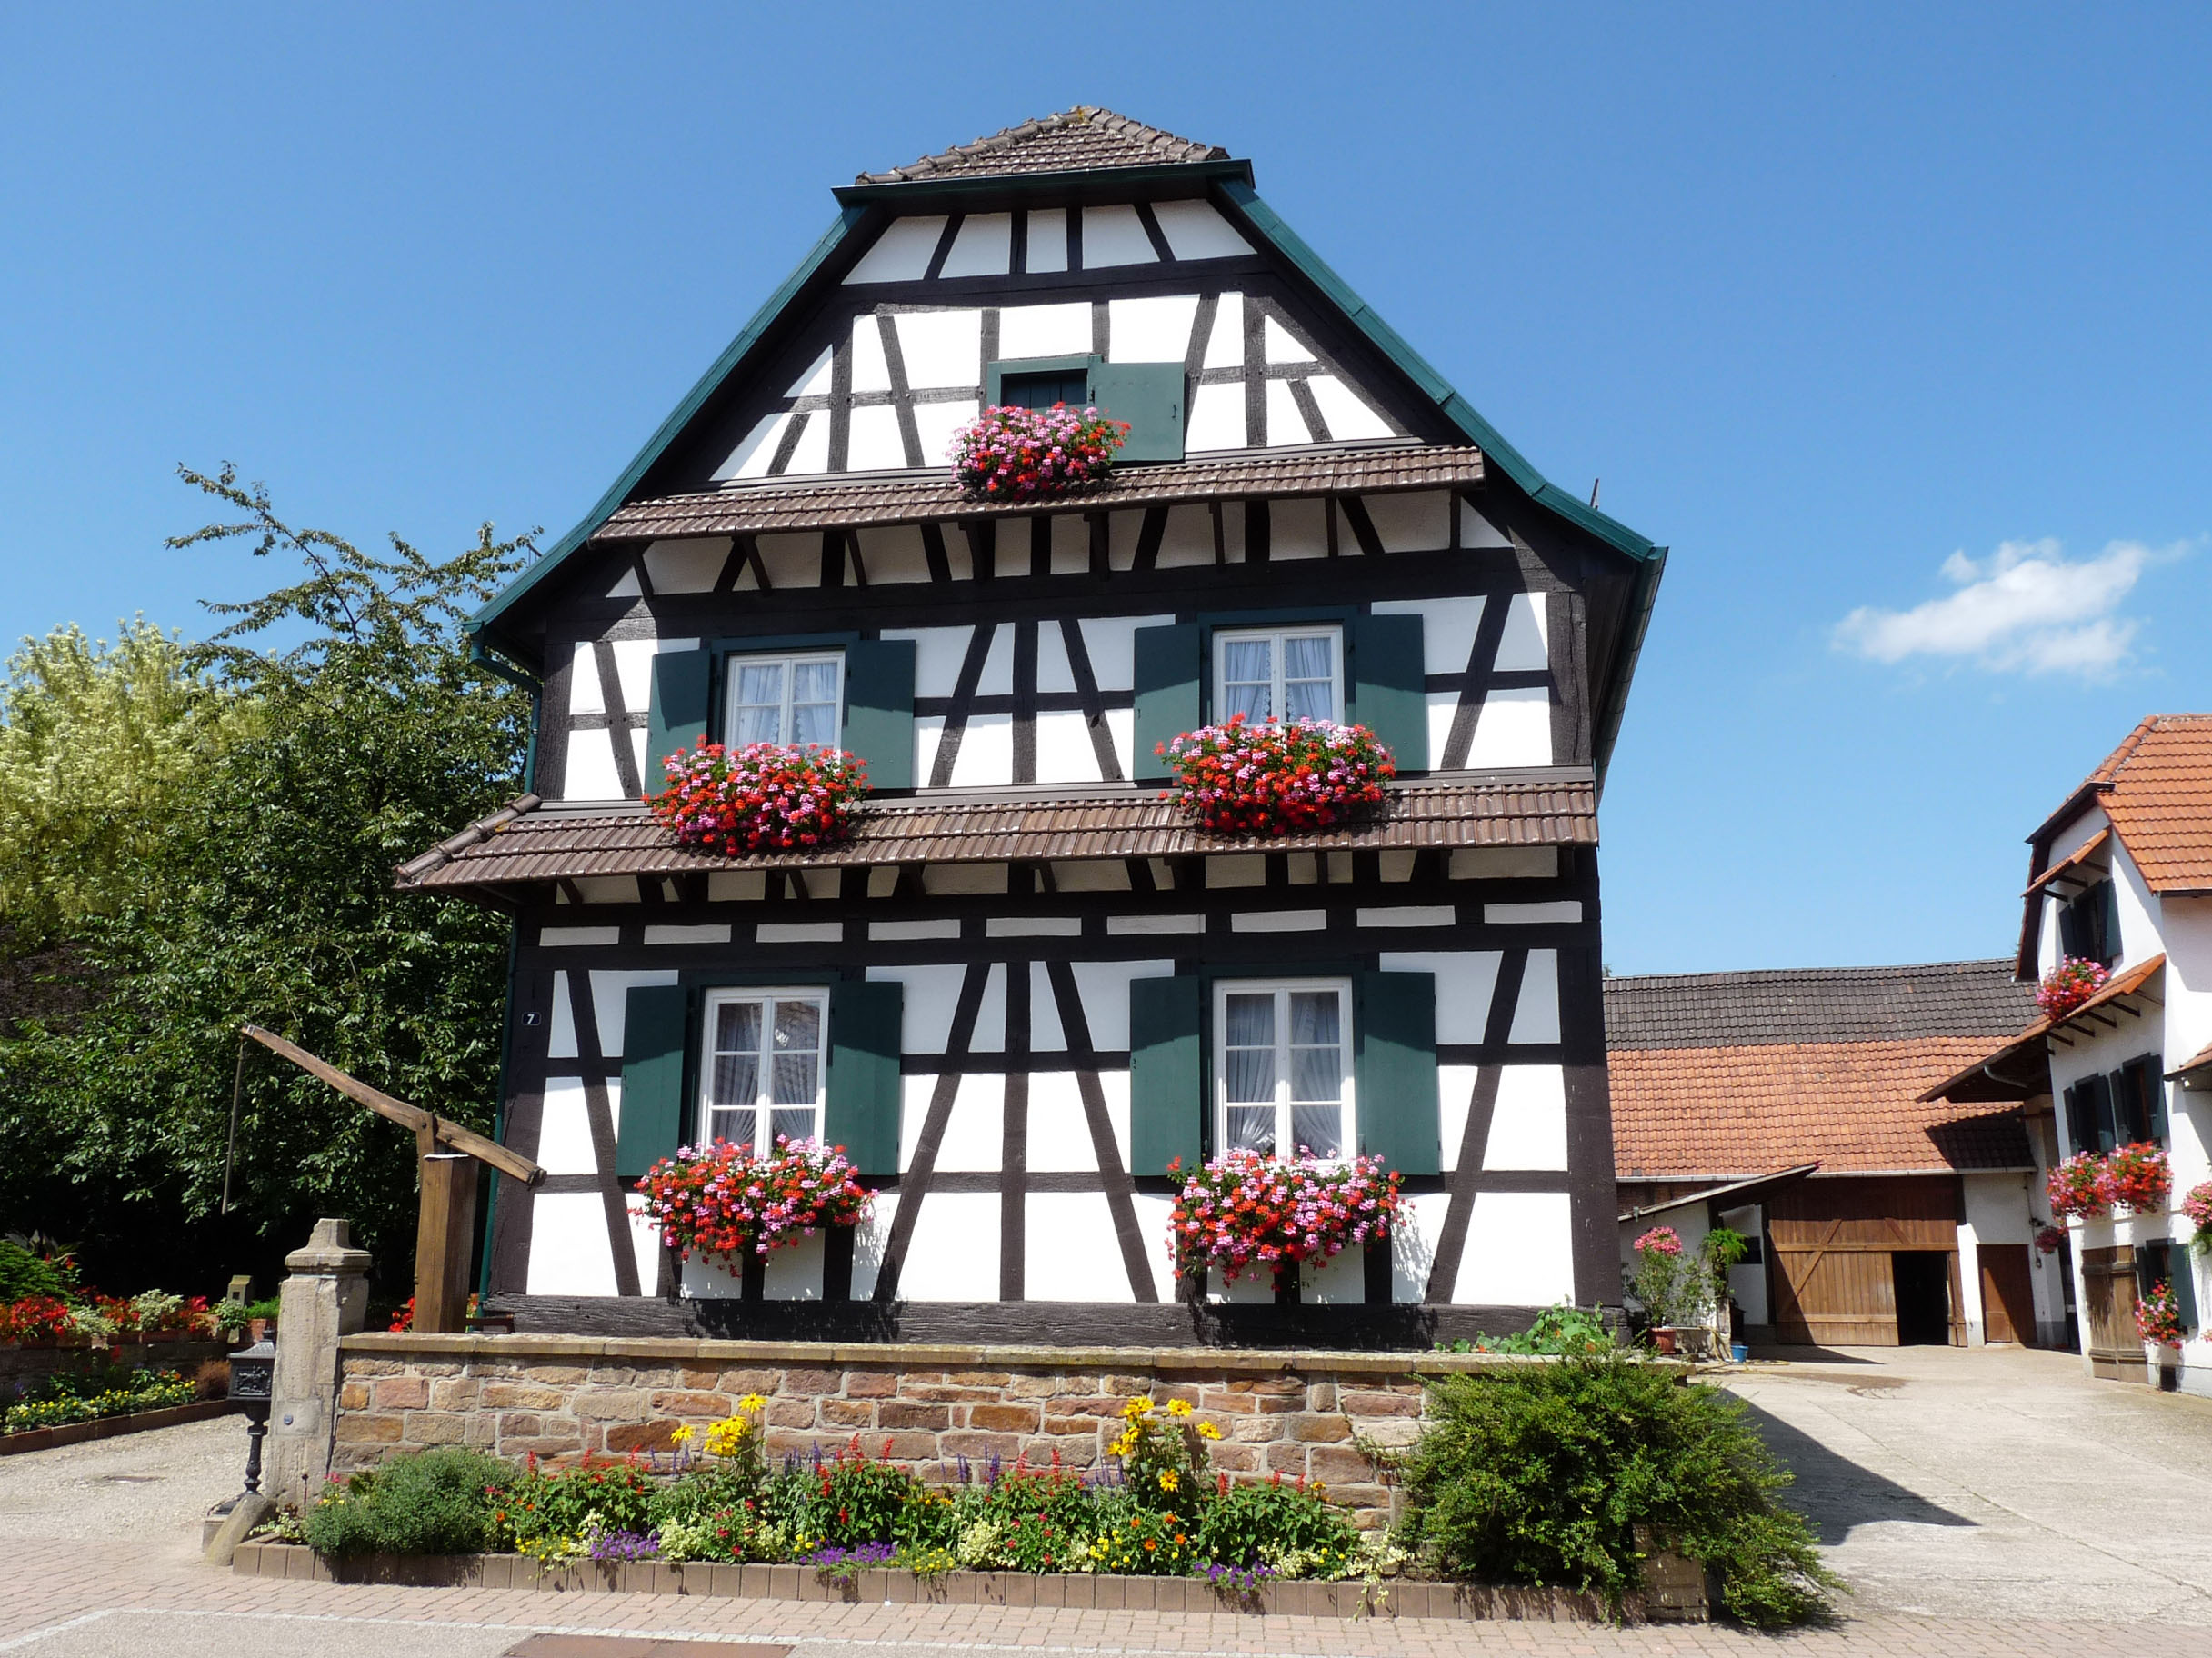 File betschdorf maison colombages 4 jpg wikimedia commons - Maison en bois allemande ...